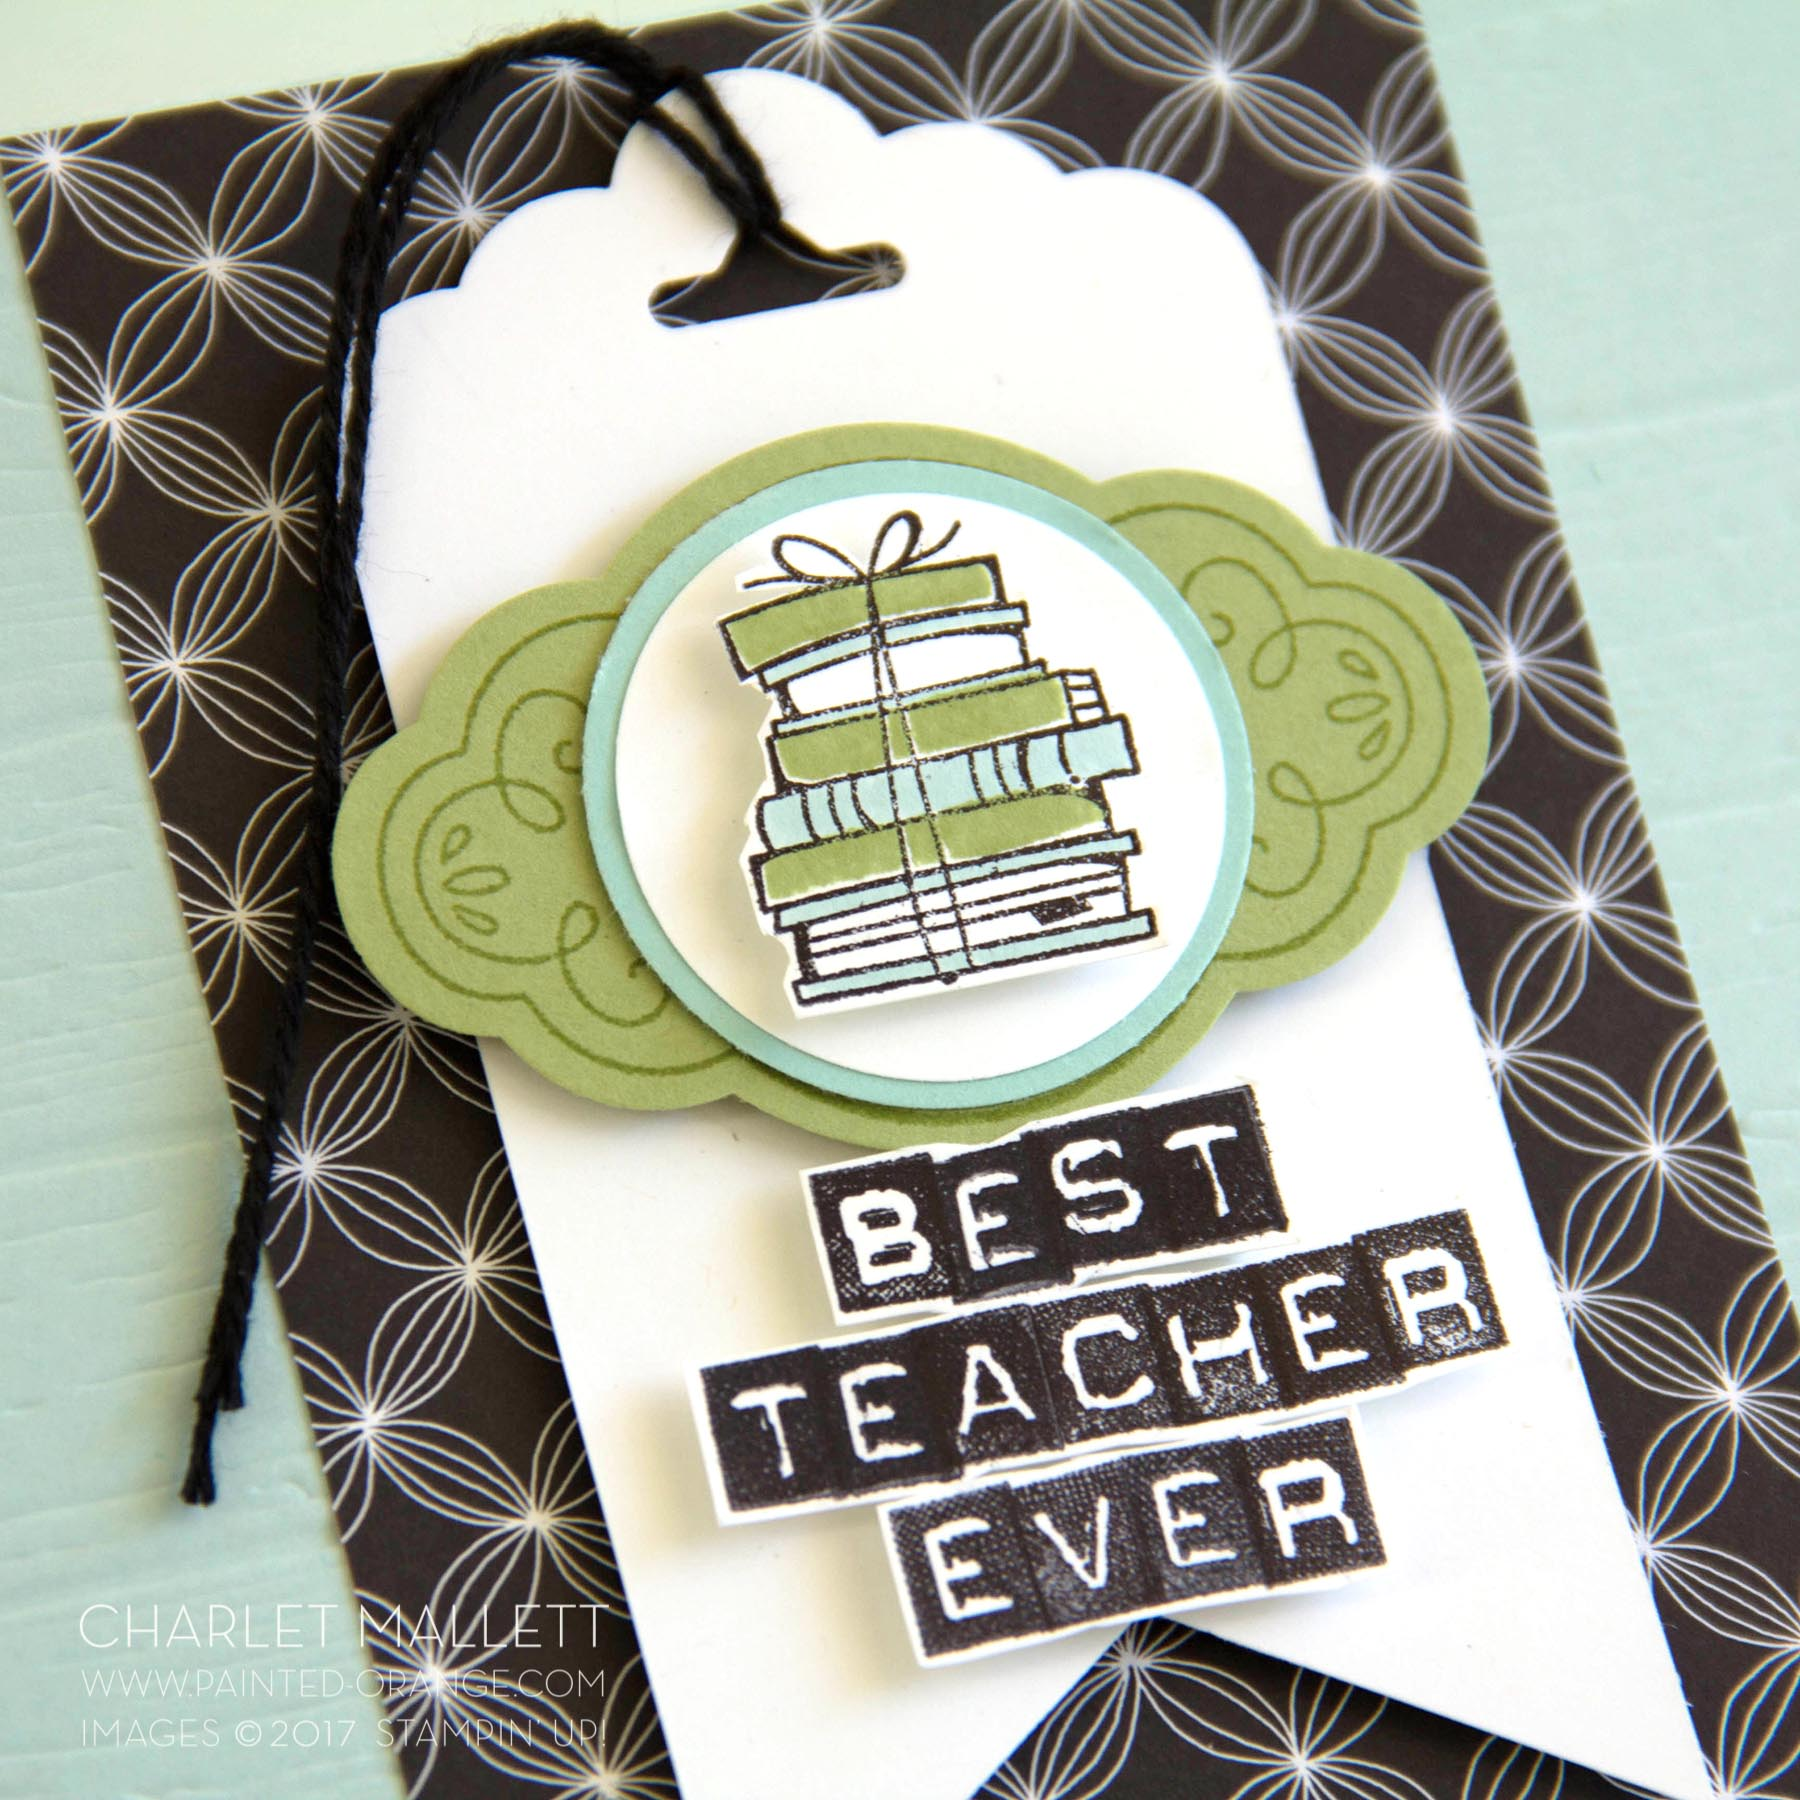 Best Teacher Ever card - World Teachers Day, Charlet Mallett - Stampin' Up! Labeler Alphabet, Bike Ride, Label Me Pretty